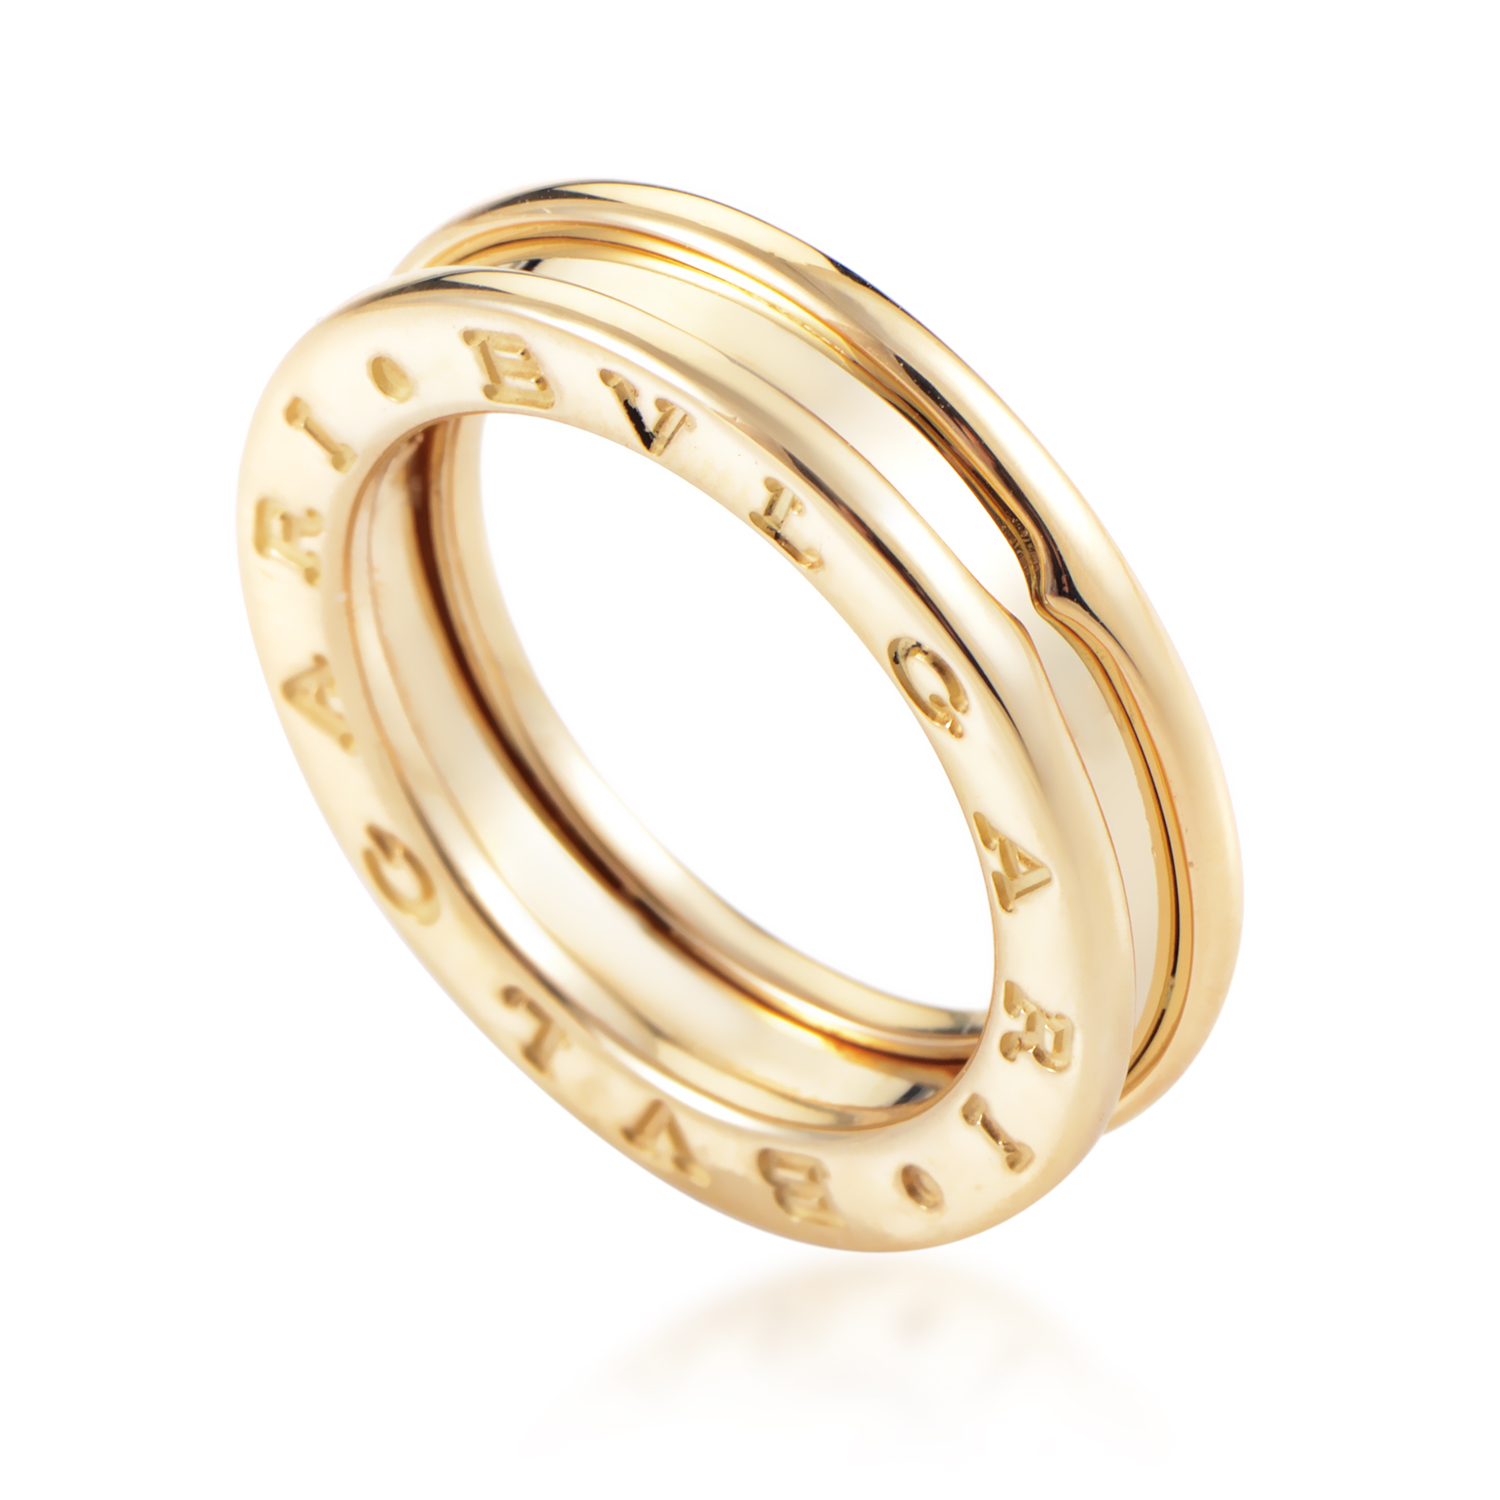 Bvlgari B.Zero 1 Women's 18K Yellow Gold Band Ring BVL06-070716